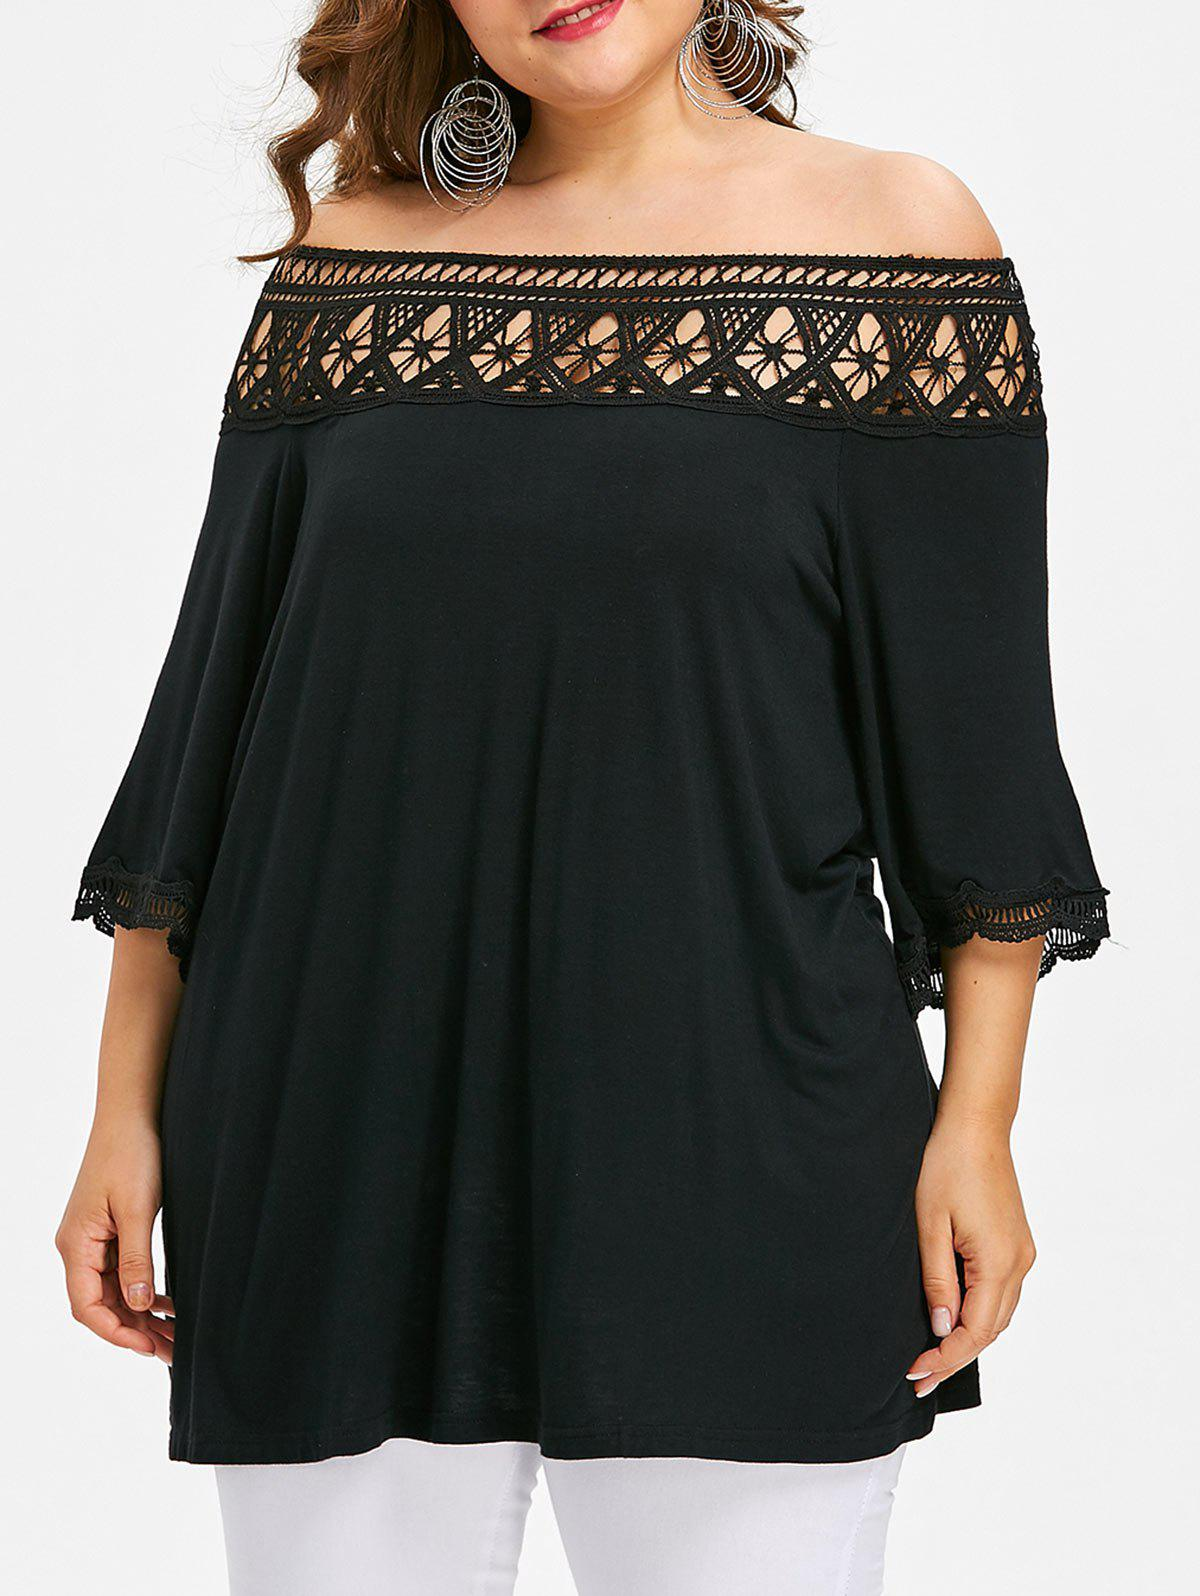 Crochet Lace Plus Size Tunic T-shirt - BLACK L